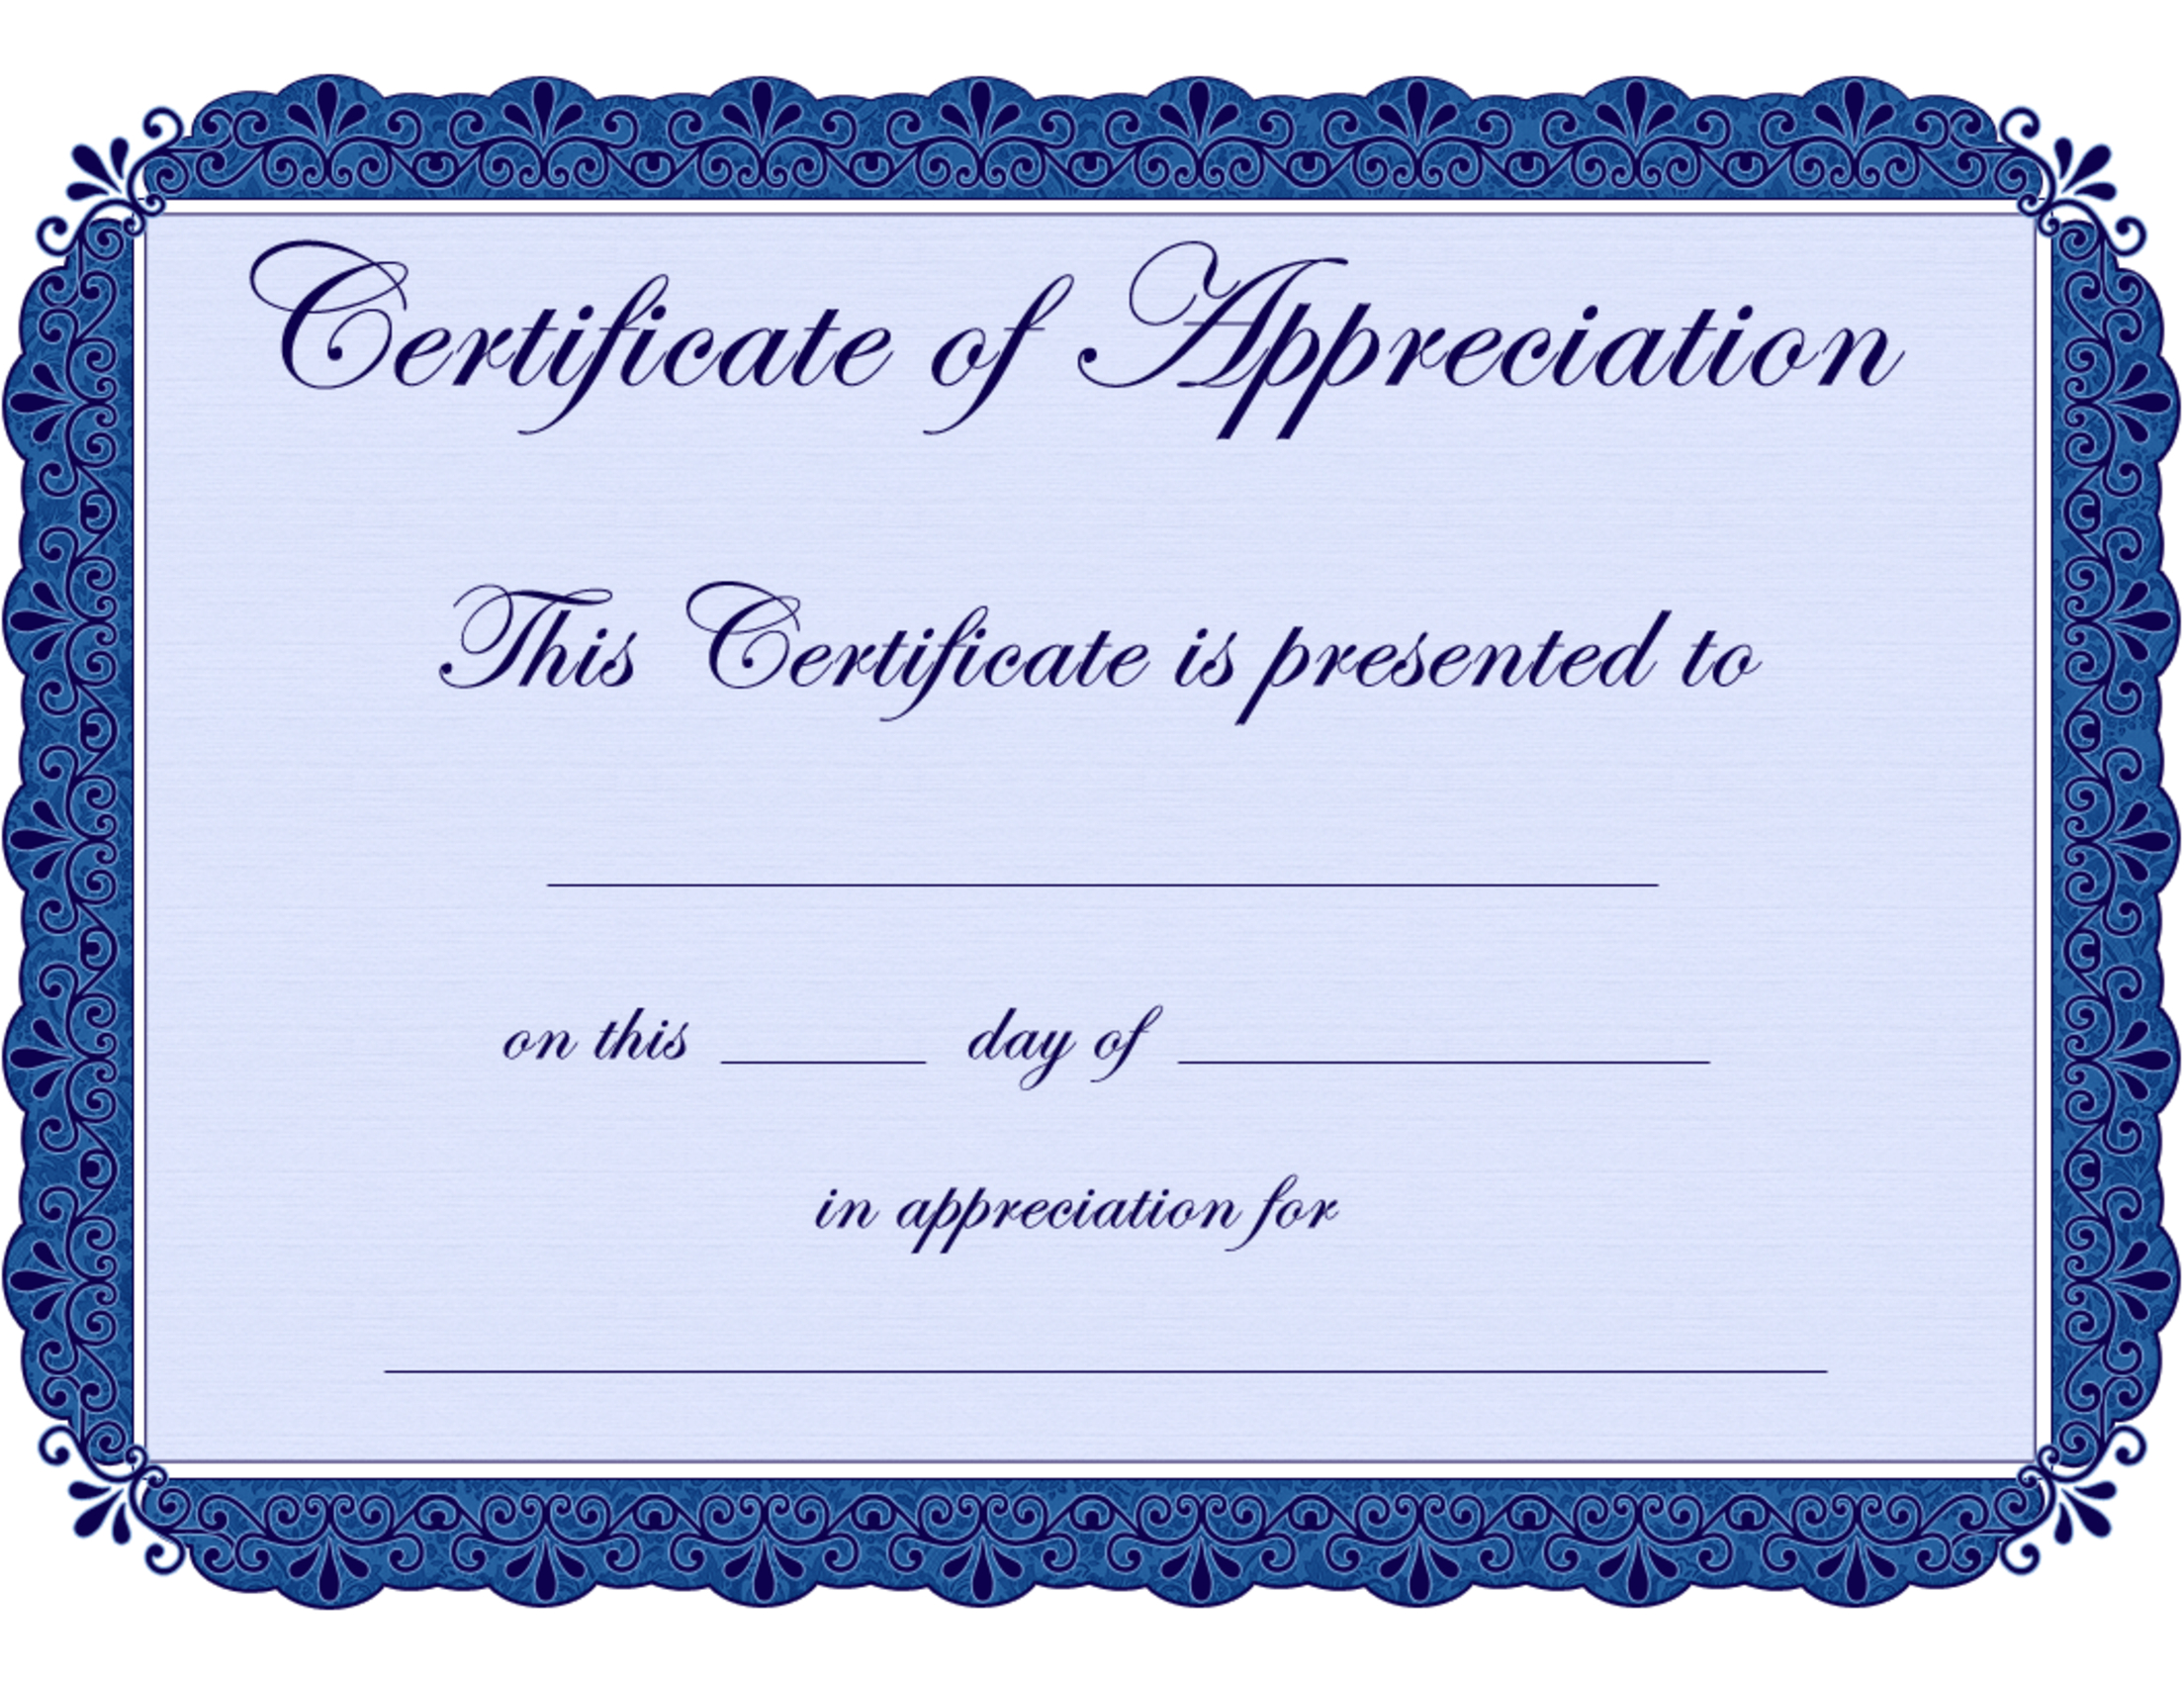 Free Printable Certificates Certificate Of Appreciation Certificate - Free Printable Templates For Certificates Of Recognition